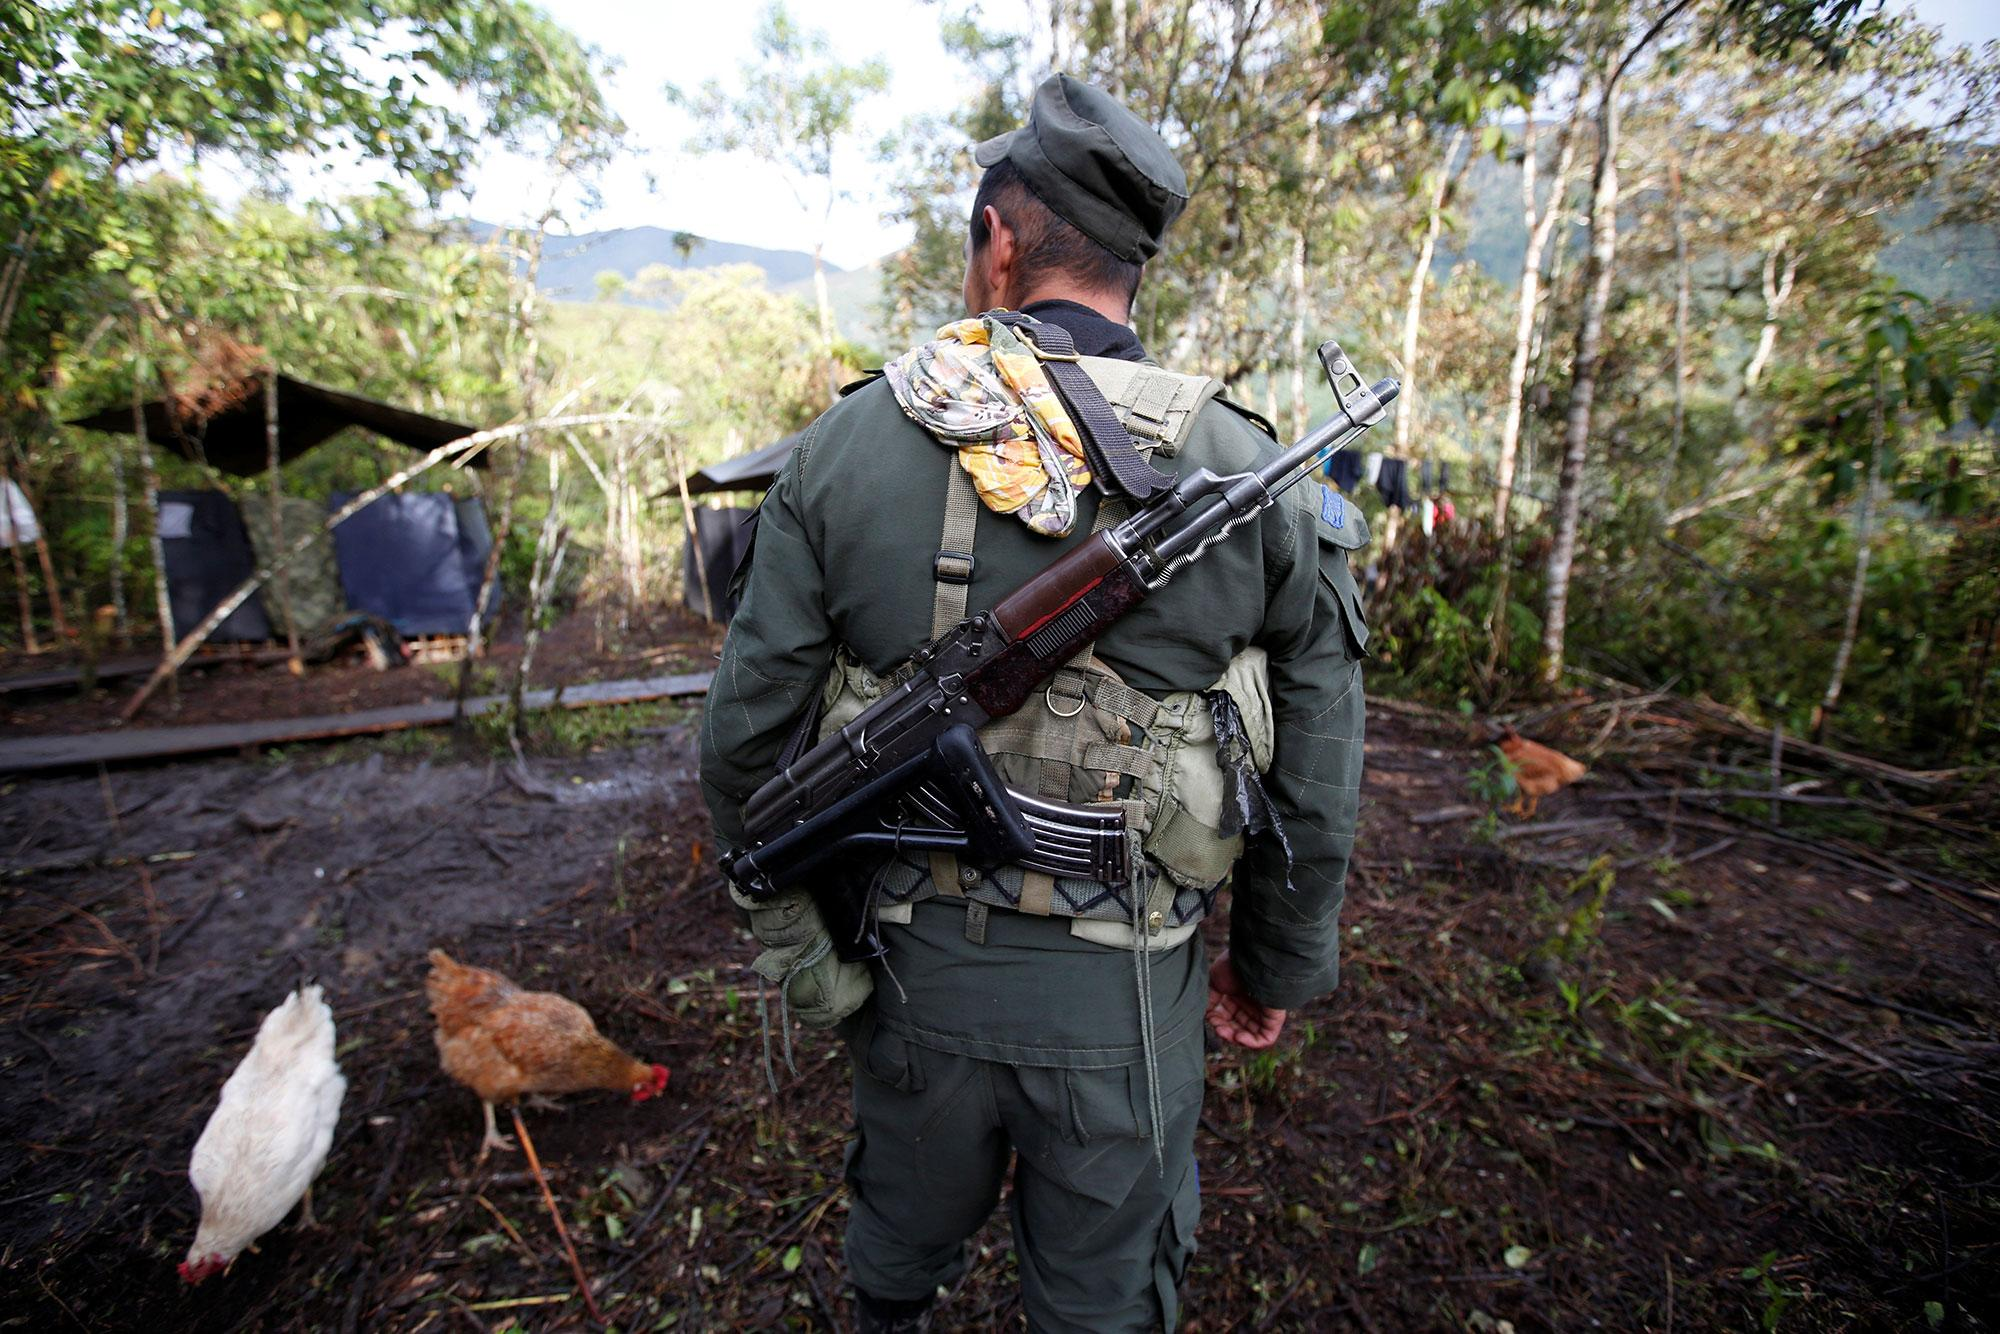 <p>A member of the 51st Front of the Revolutionary Armed Forces of Colombia (FARC) walks at a camp in Cordillera Oriental, Colombia, August 16, 2016. (John Vizcaino/Reuters) </p>